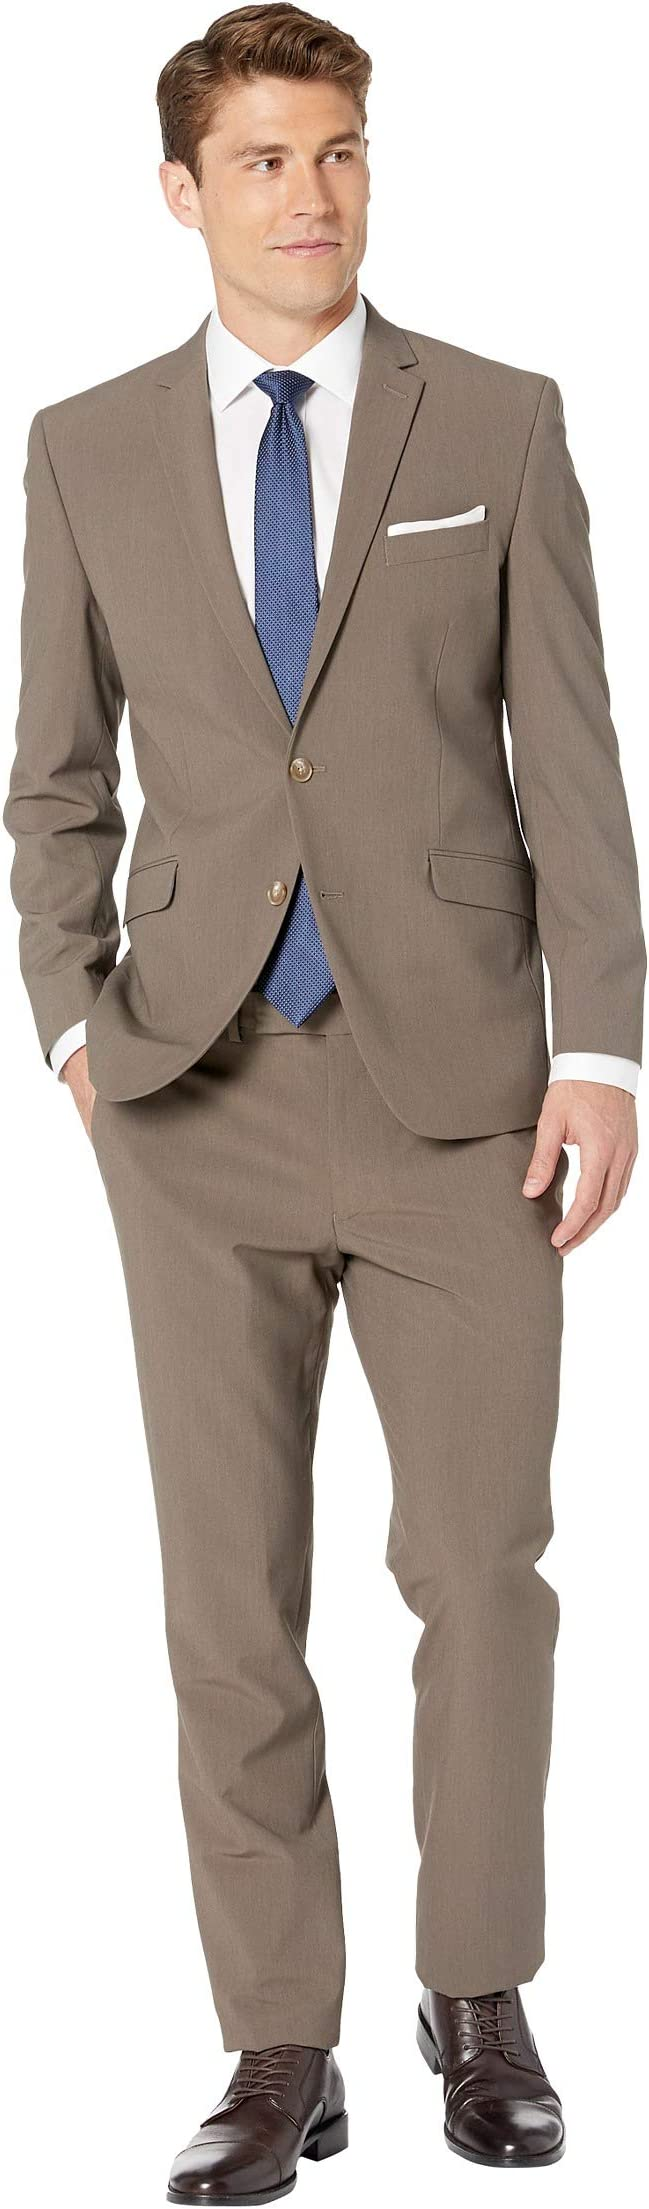 Kenneth Cole Reaction Solid Slim Fit Stretch Performance Suit npiL7